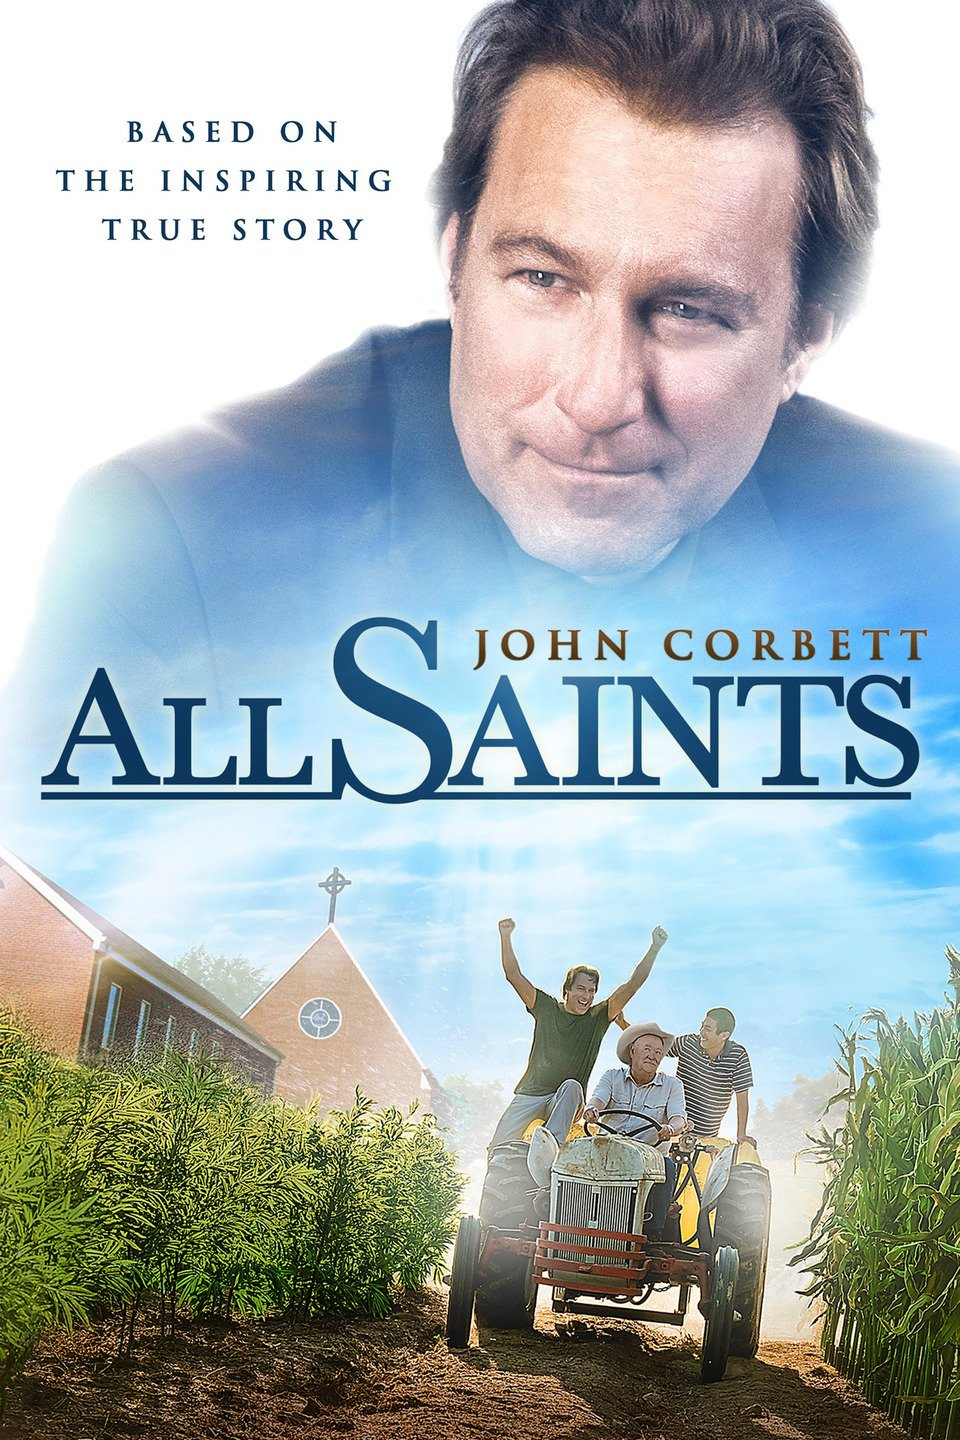 All Saints Part 2 - March 20   Michael Spurlock decides to trade in his corporate sales career to become a pastor. Unfortunately, his first assignment is to close a country church and sell the prime piece of land where it sits. He soon has a change of heart when the church starts to welcome refugees from Burma. Spurlock now findshimself working with the refugees to turn the land into a working farm to pay the church's bills.